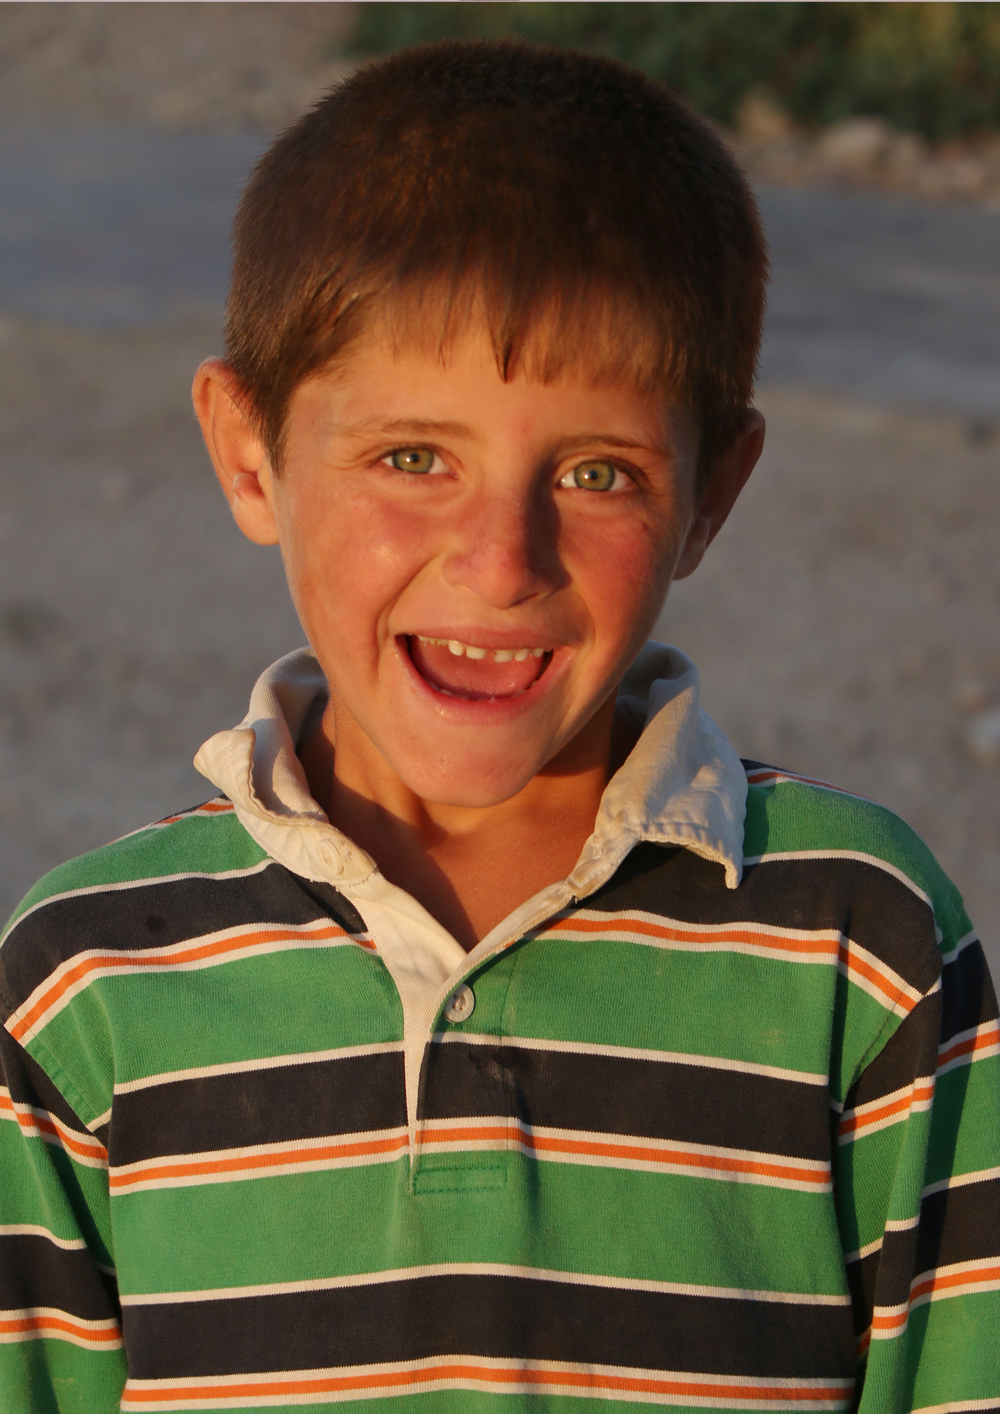 Syrian boy refugee portrait